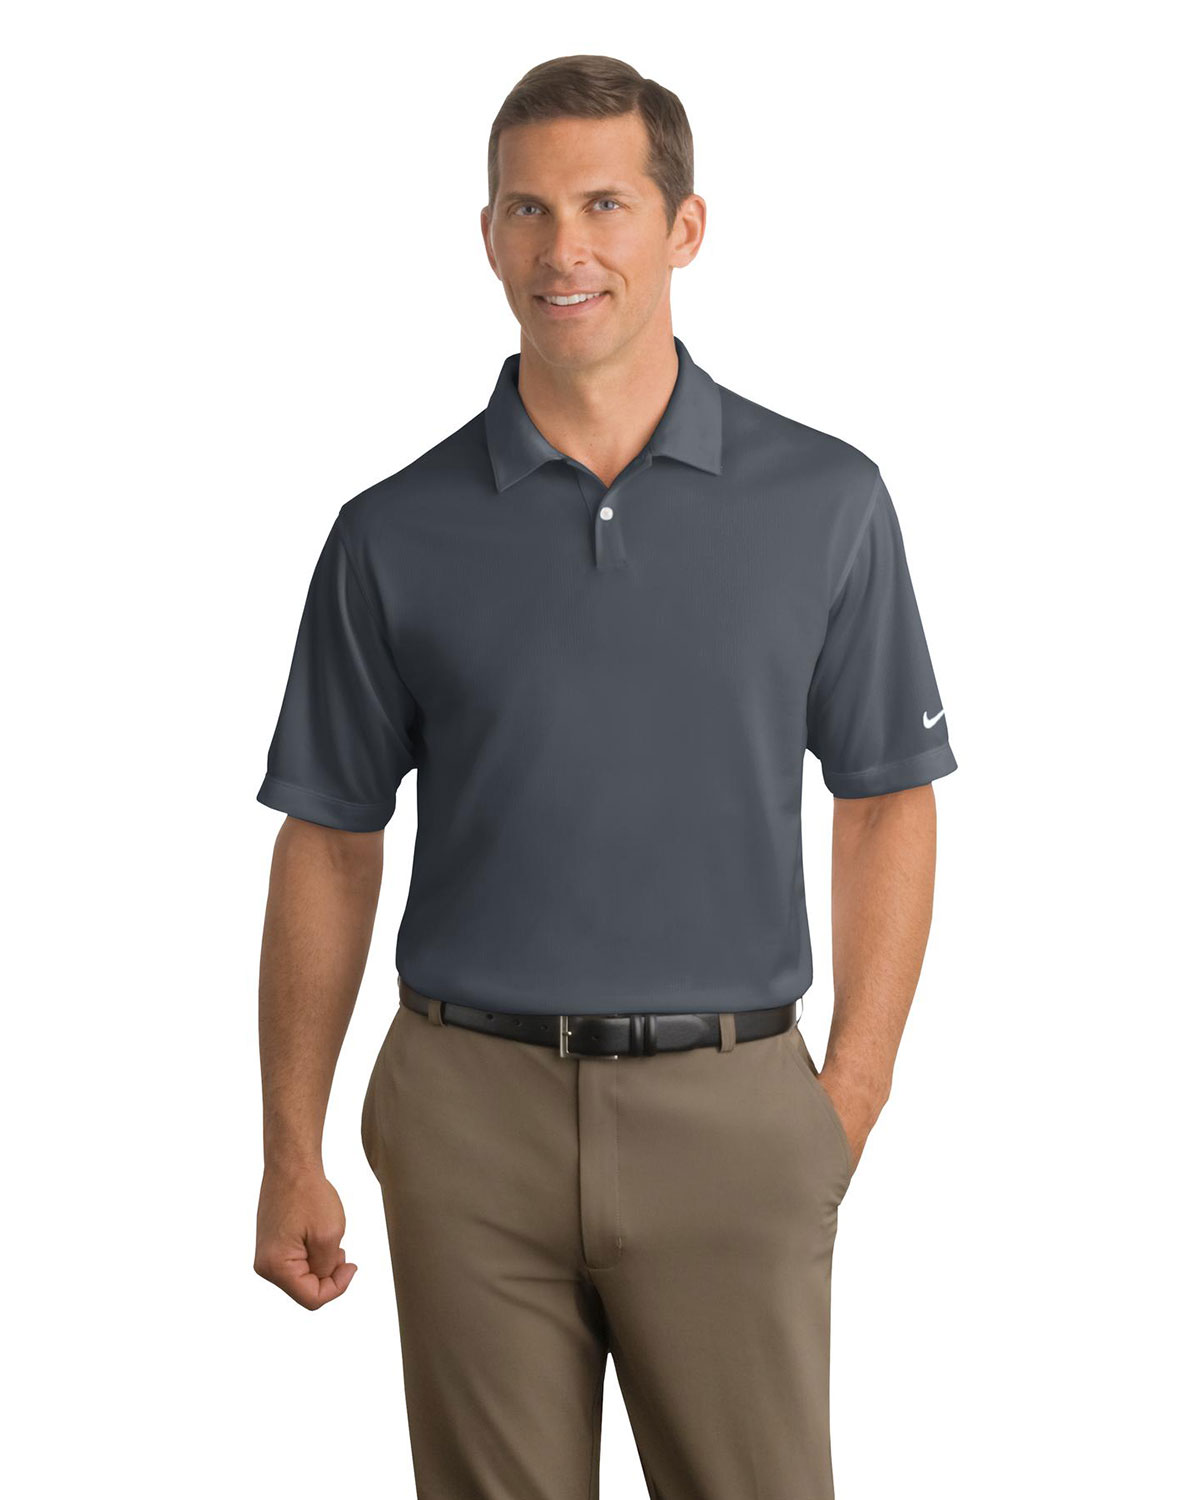 ebcac5eca NIKE - Top of the line Corporate Apparel - Verified Label